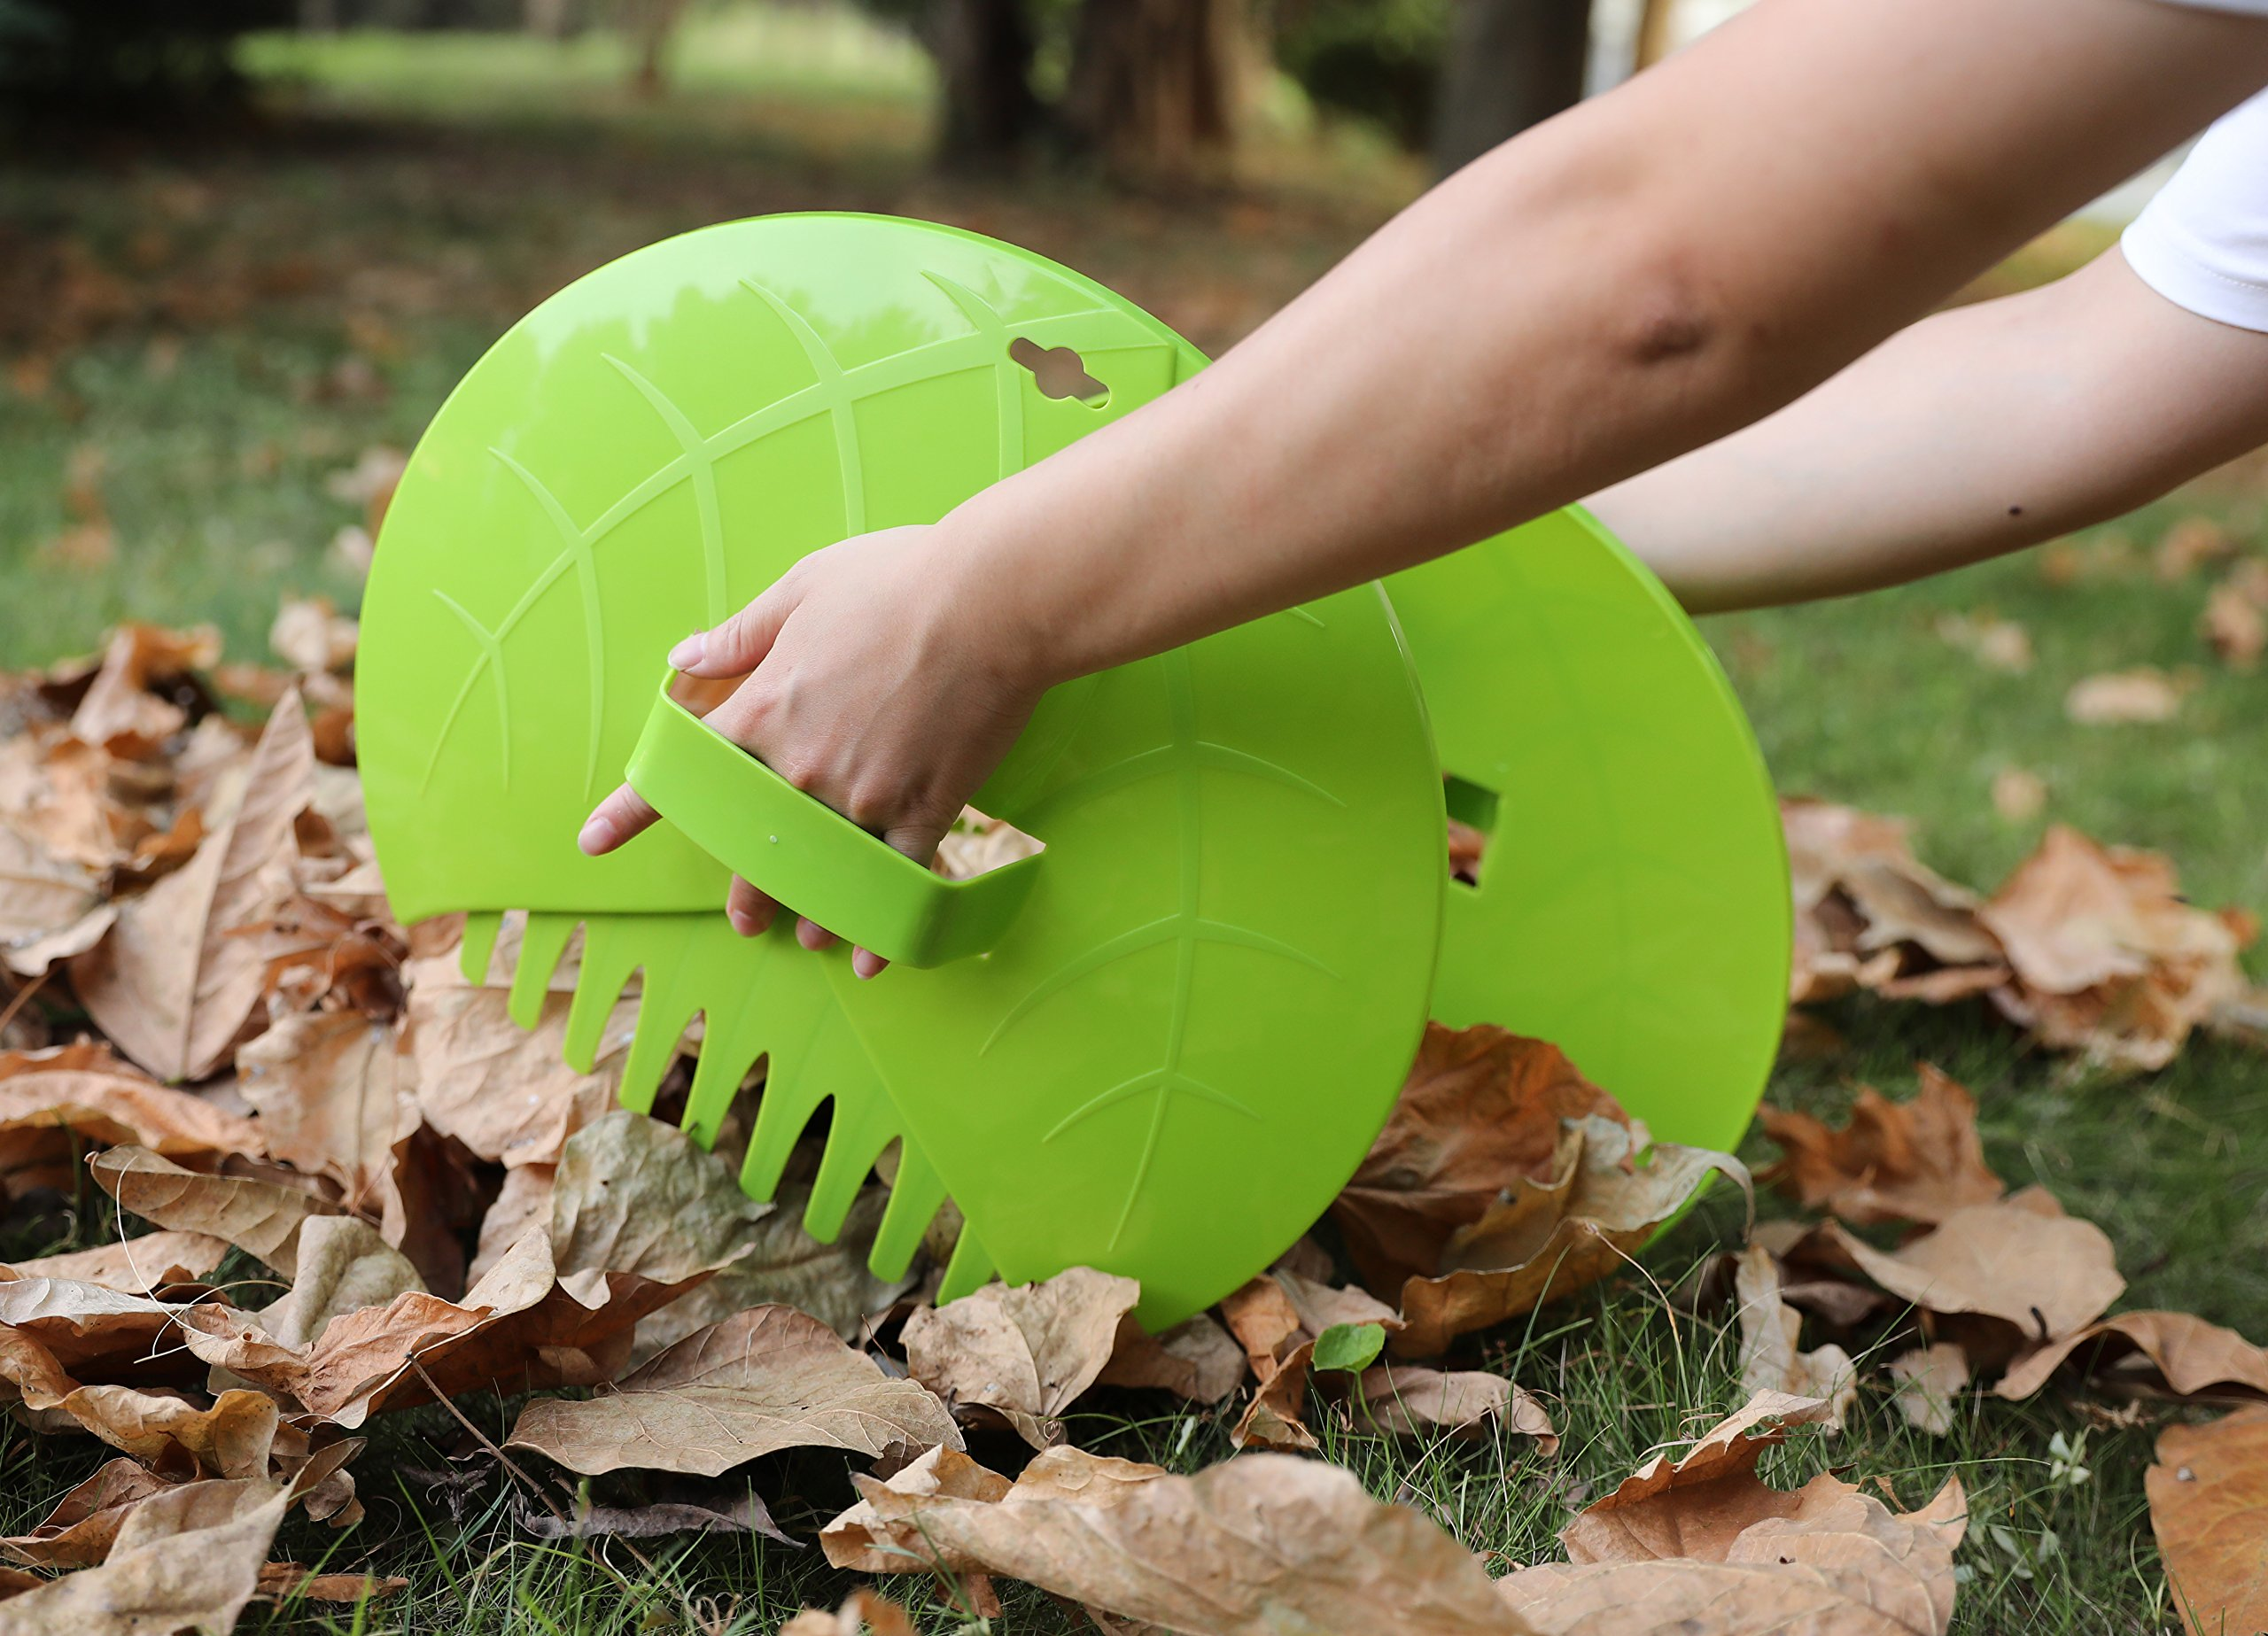 Pair of Leaf Scoops, Hand Rakes for Lawn and Garden Cleanup by Gardenised